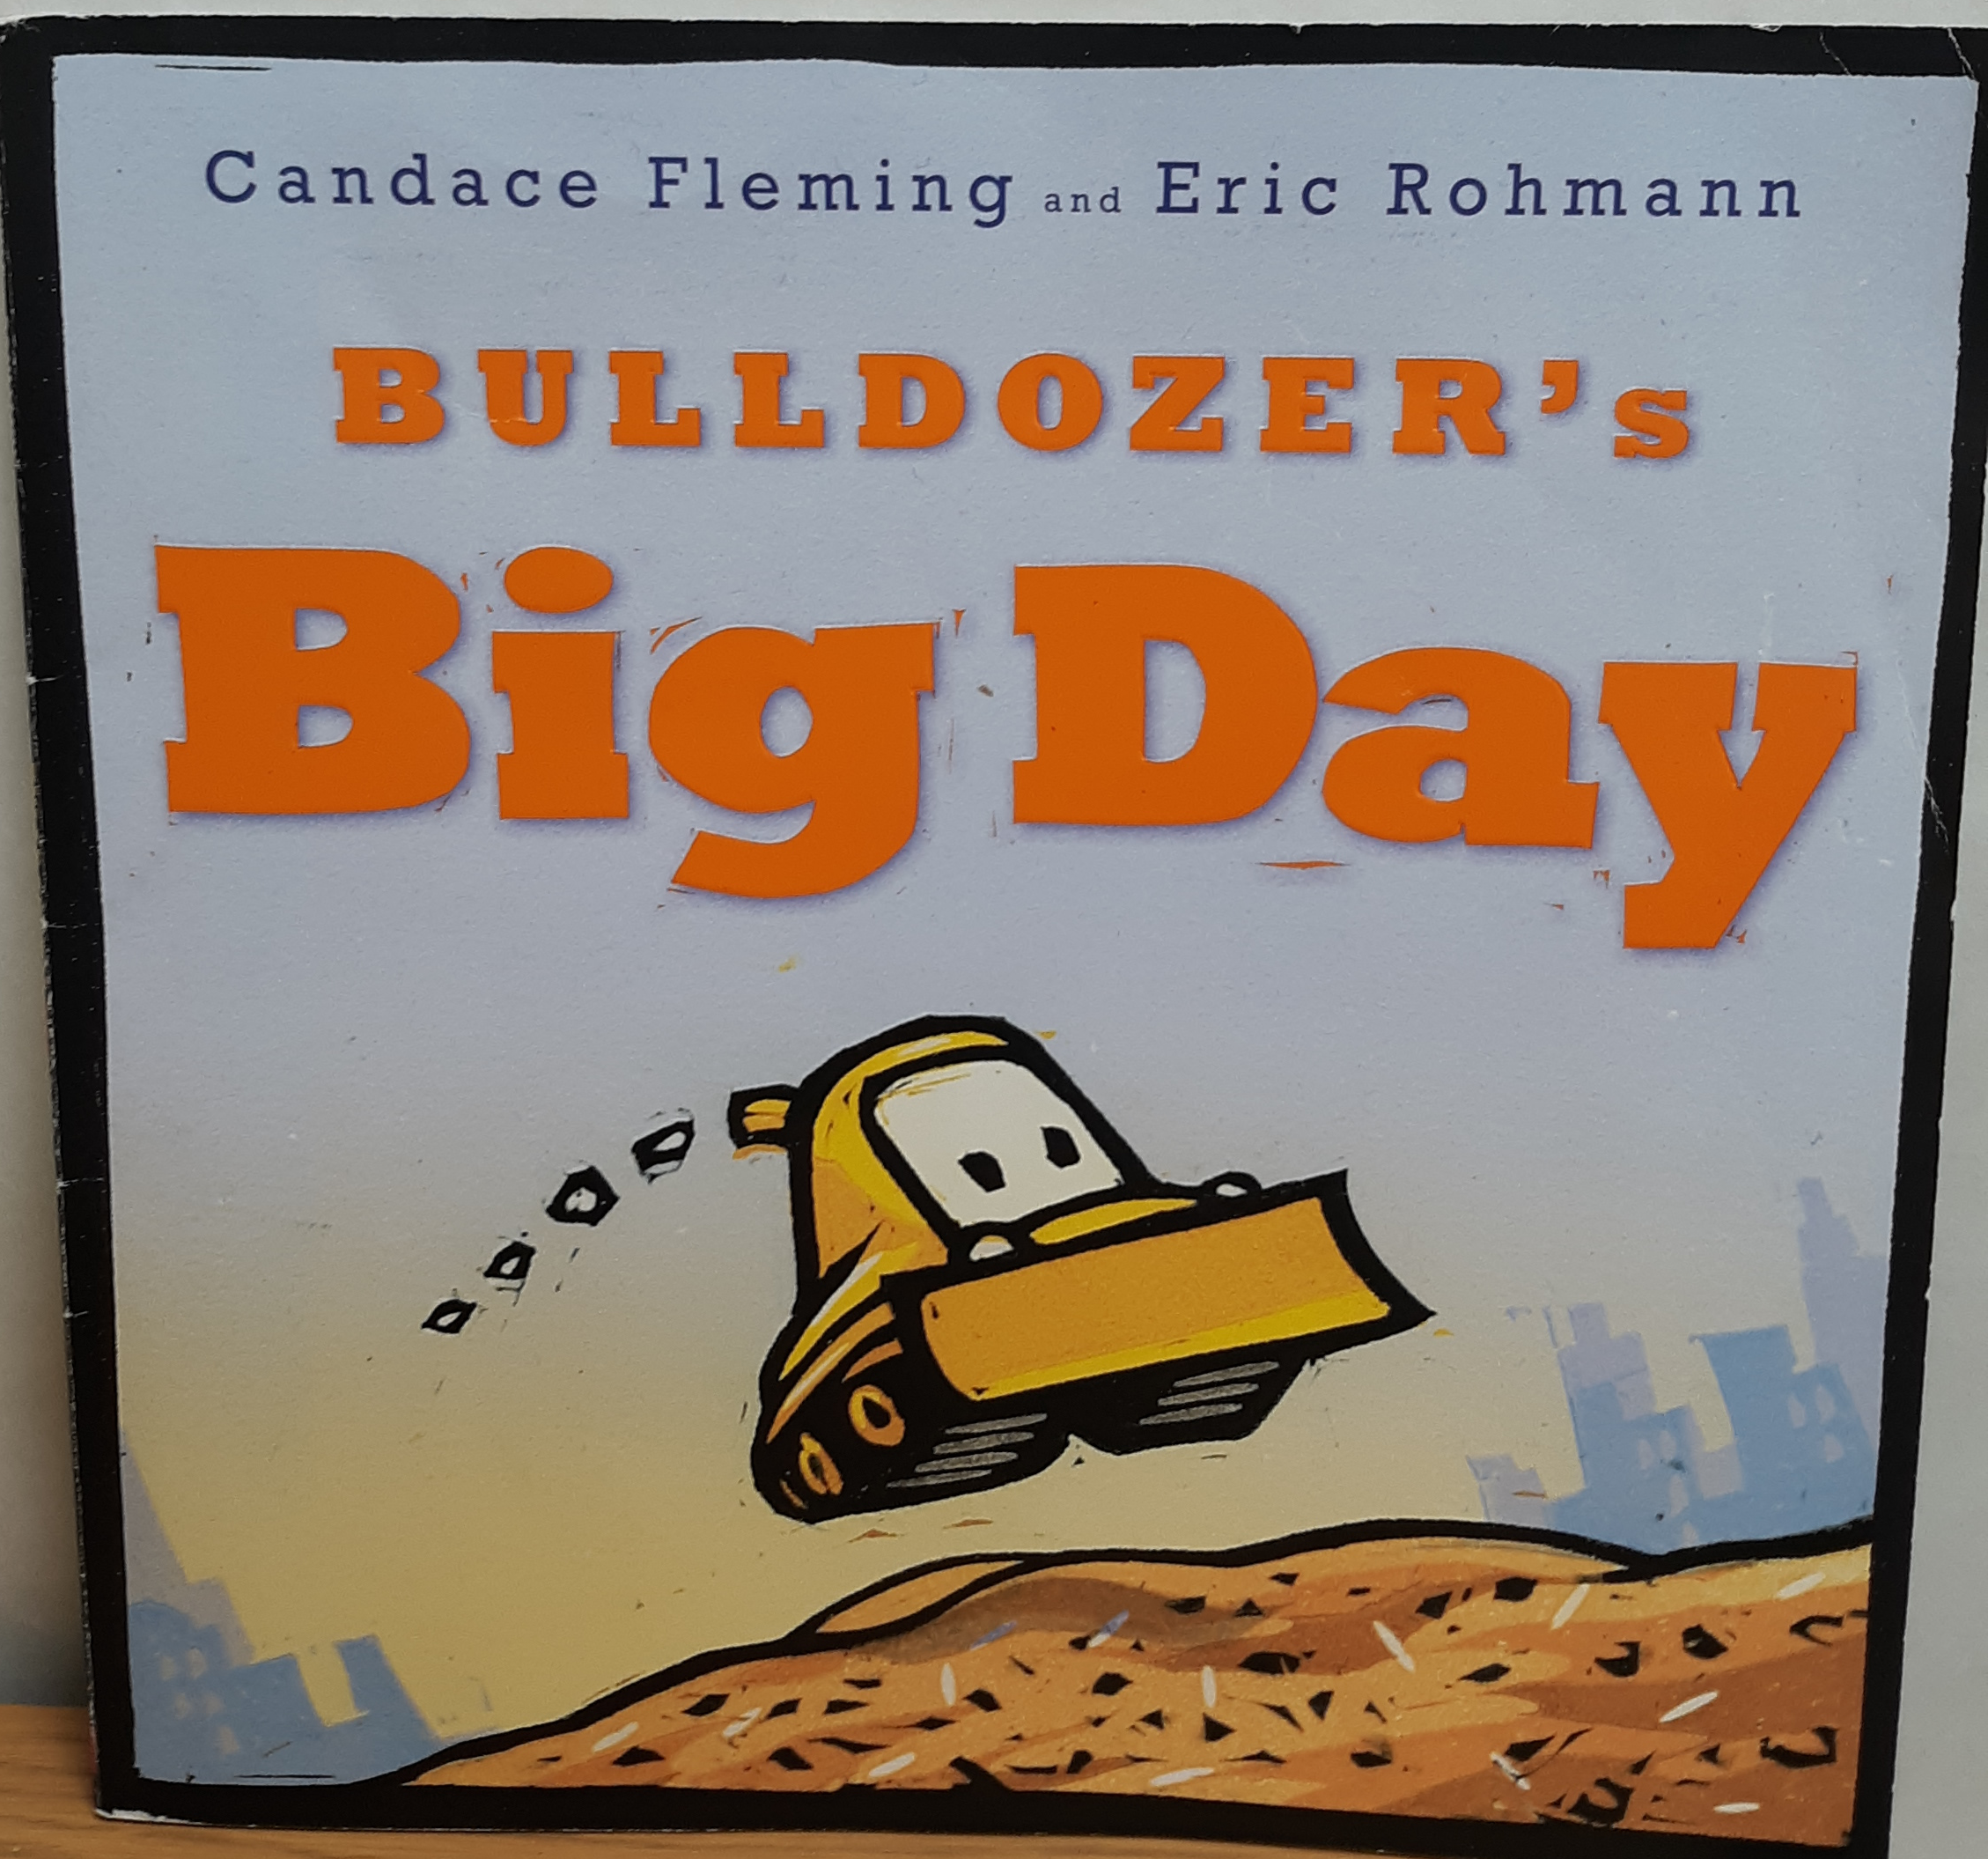 https://0201.nccdn.net/1_2/000/000/189/253/bulldozer-s-big-day.png